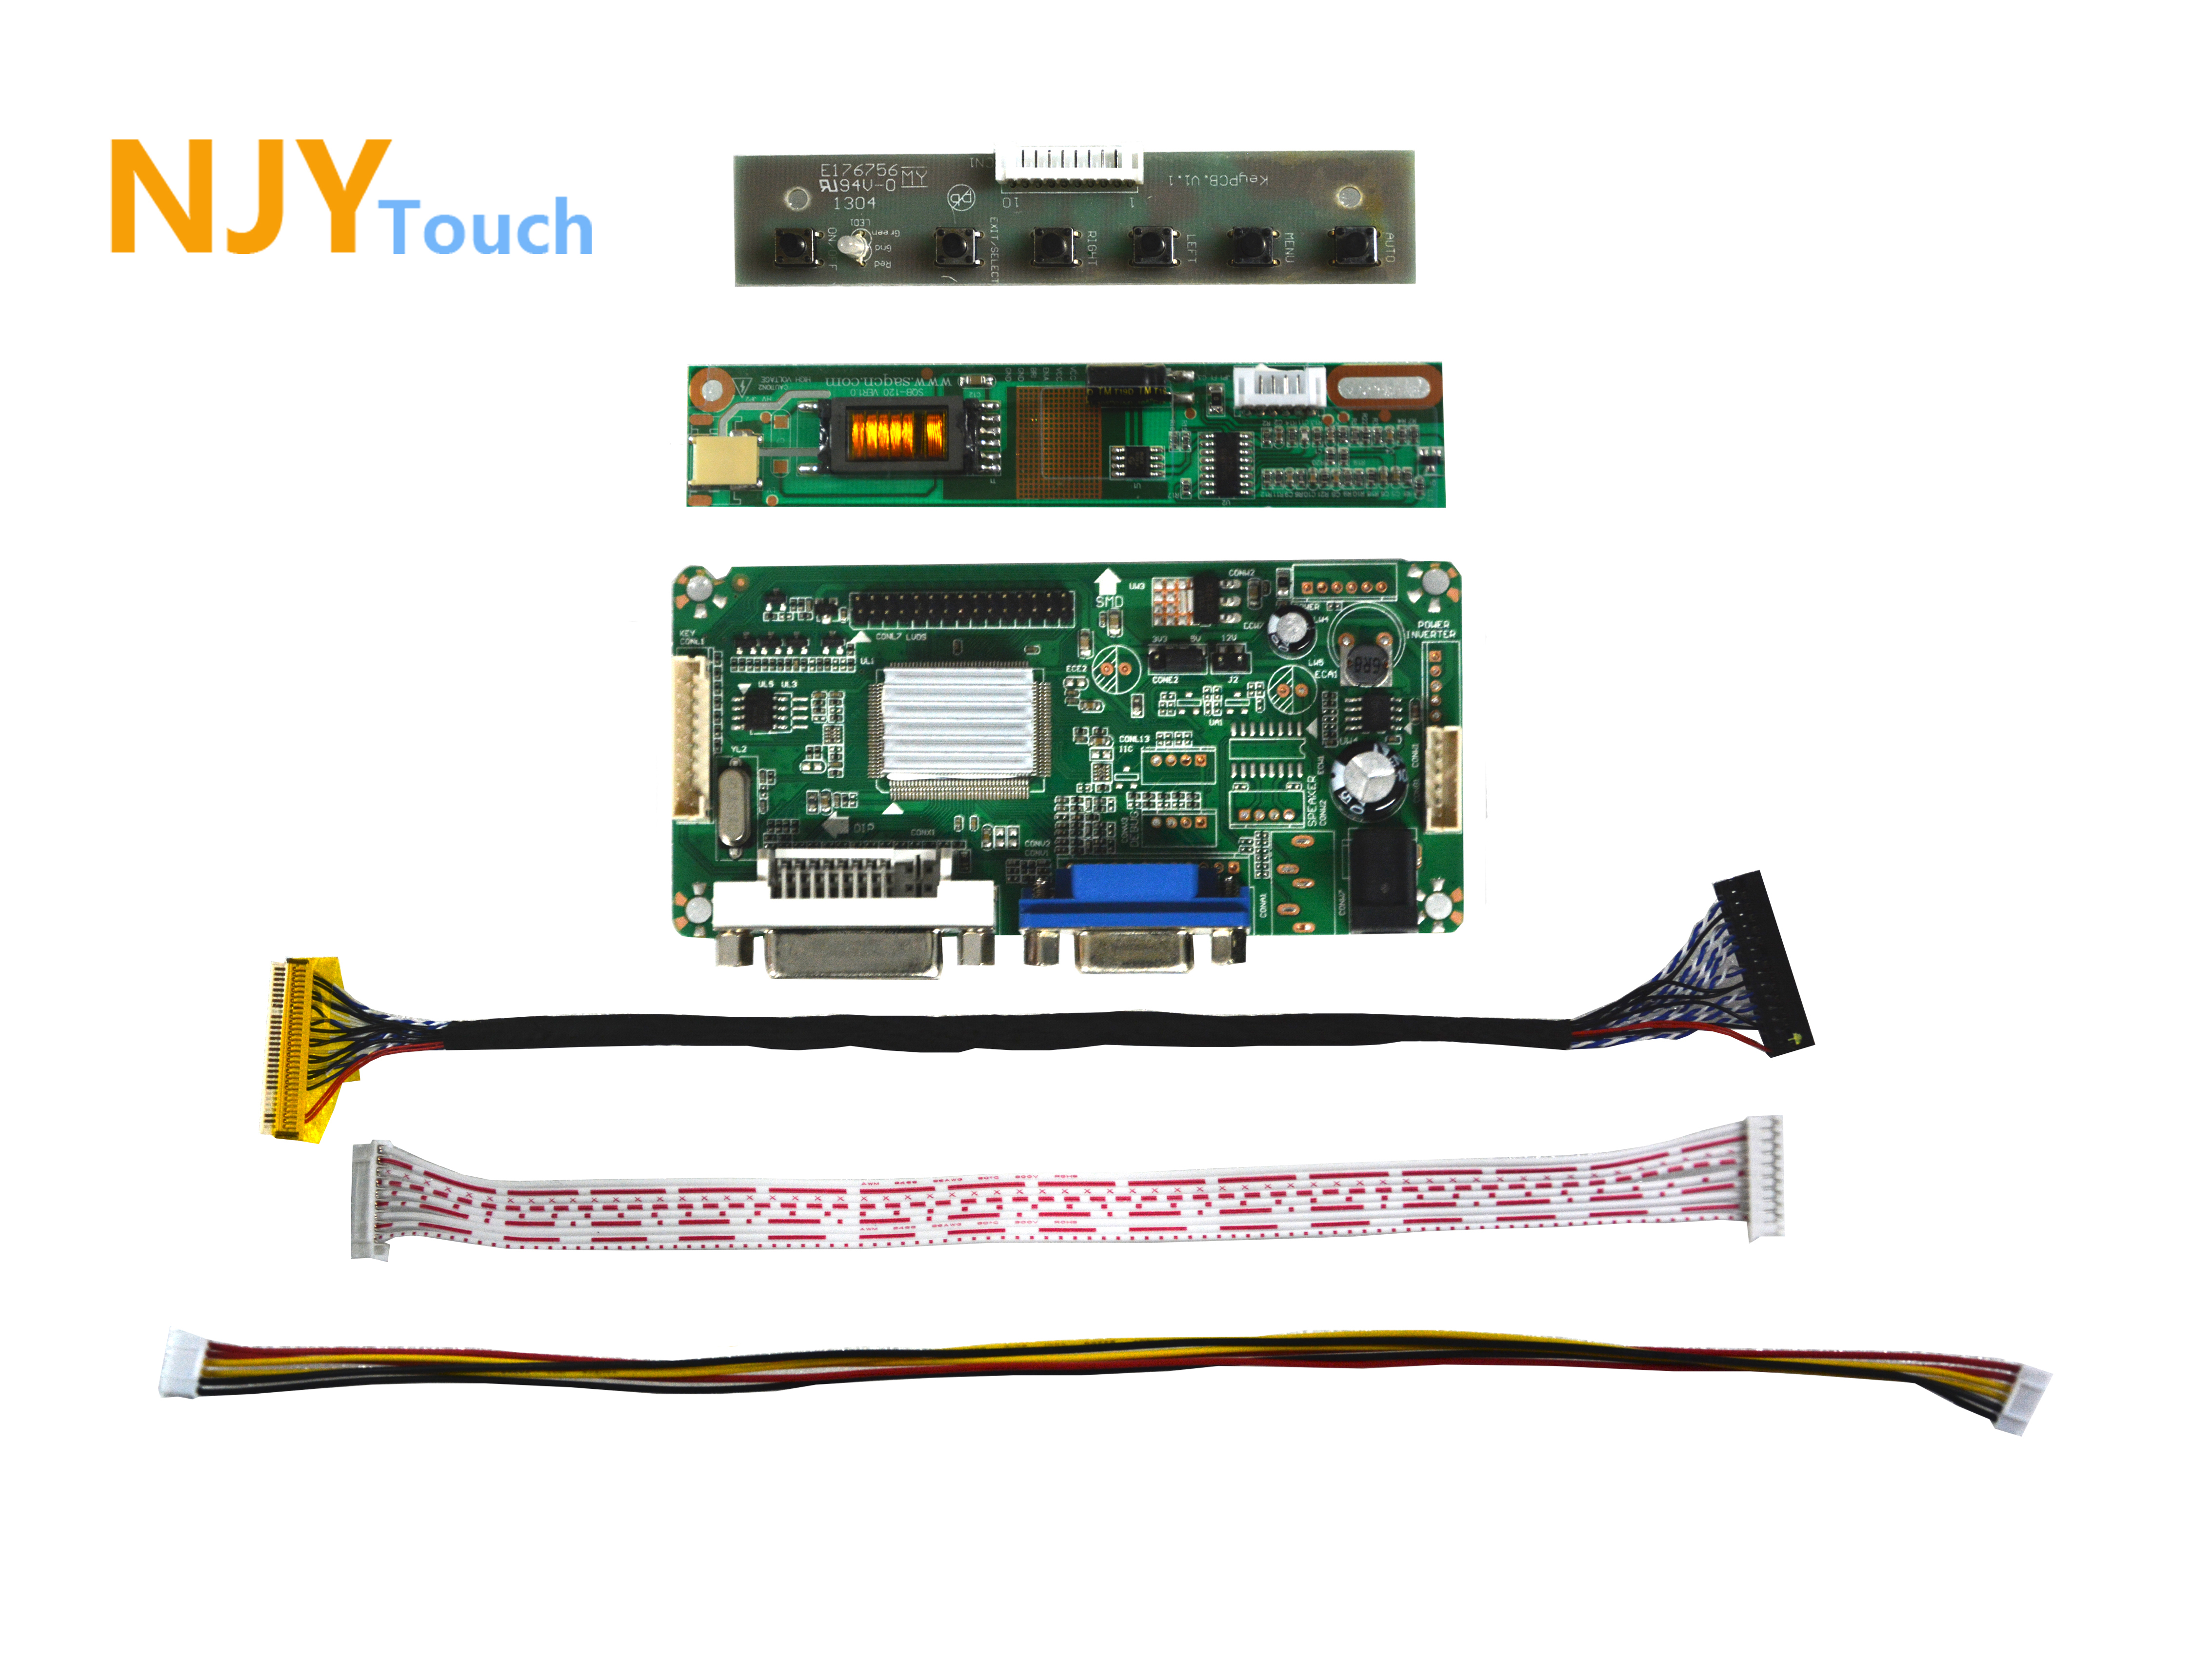 NJYTouch LM.R61 DVI VGA LCD Controller Driver Board For 17inch B170PW01 V0 B170PW03 V3 1440x900 LCD Screen